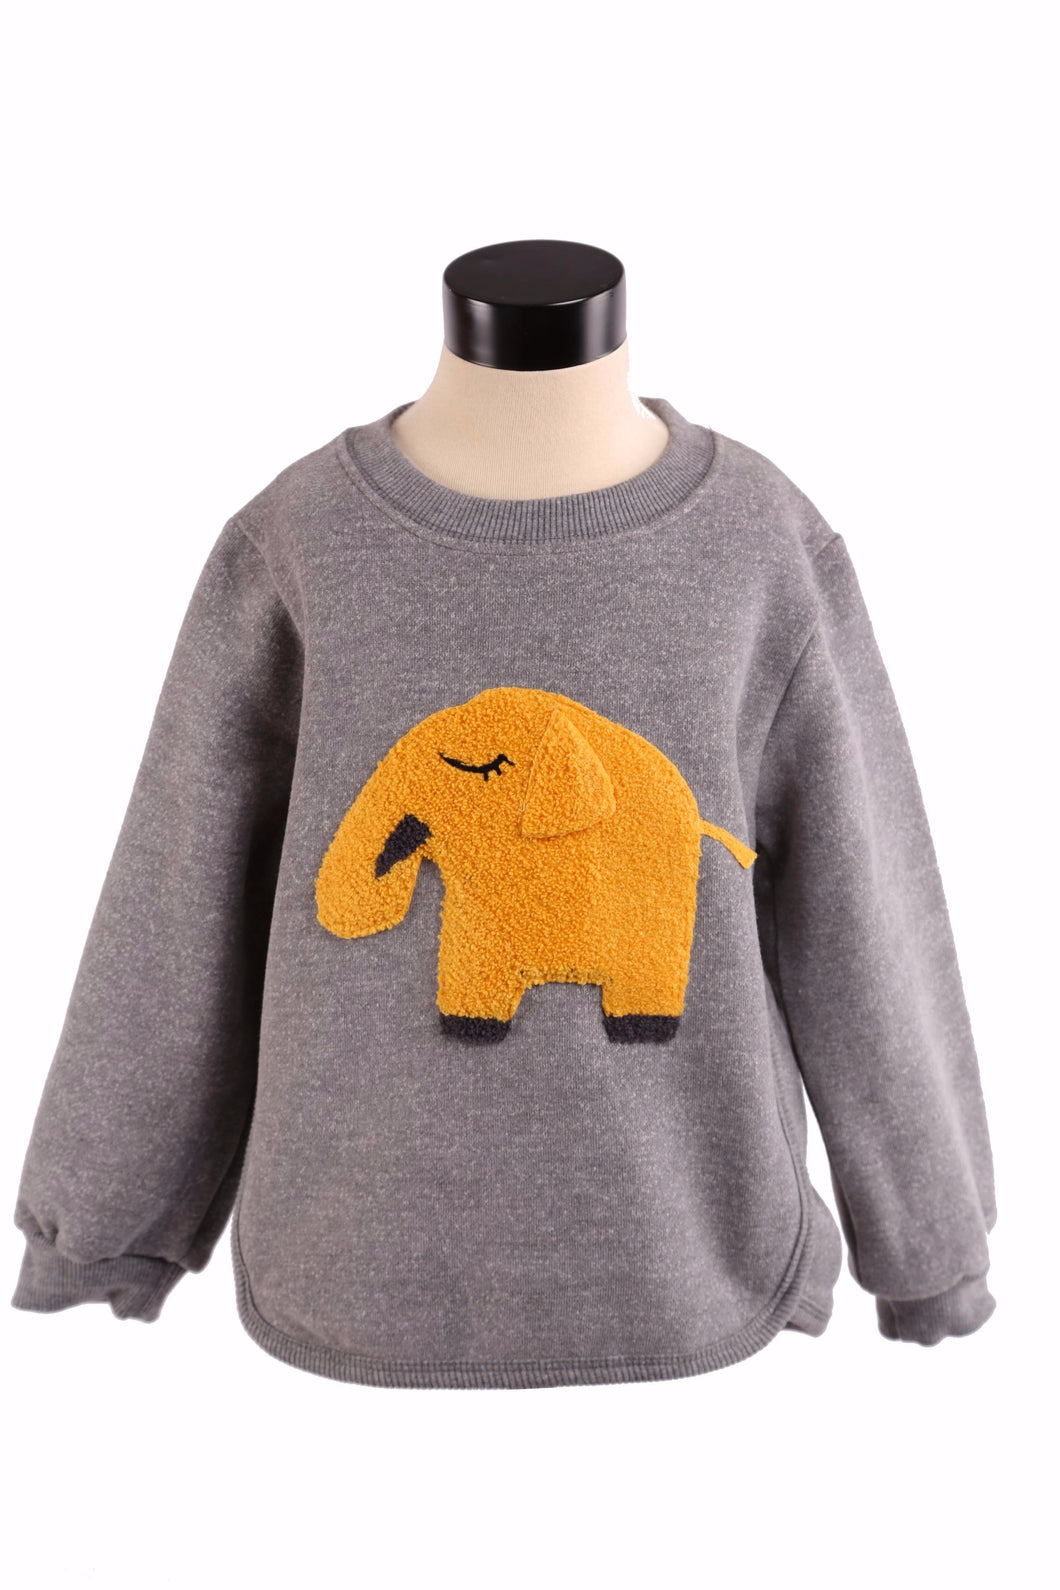 Little Who- Long Sleeve Crew Neck Sweater w/ Elephant Patch